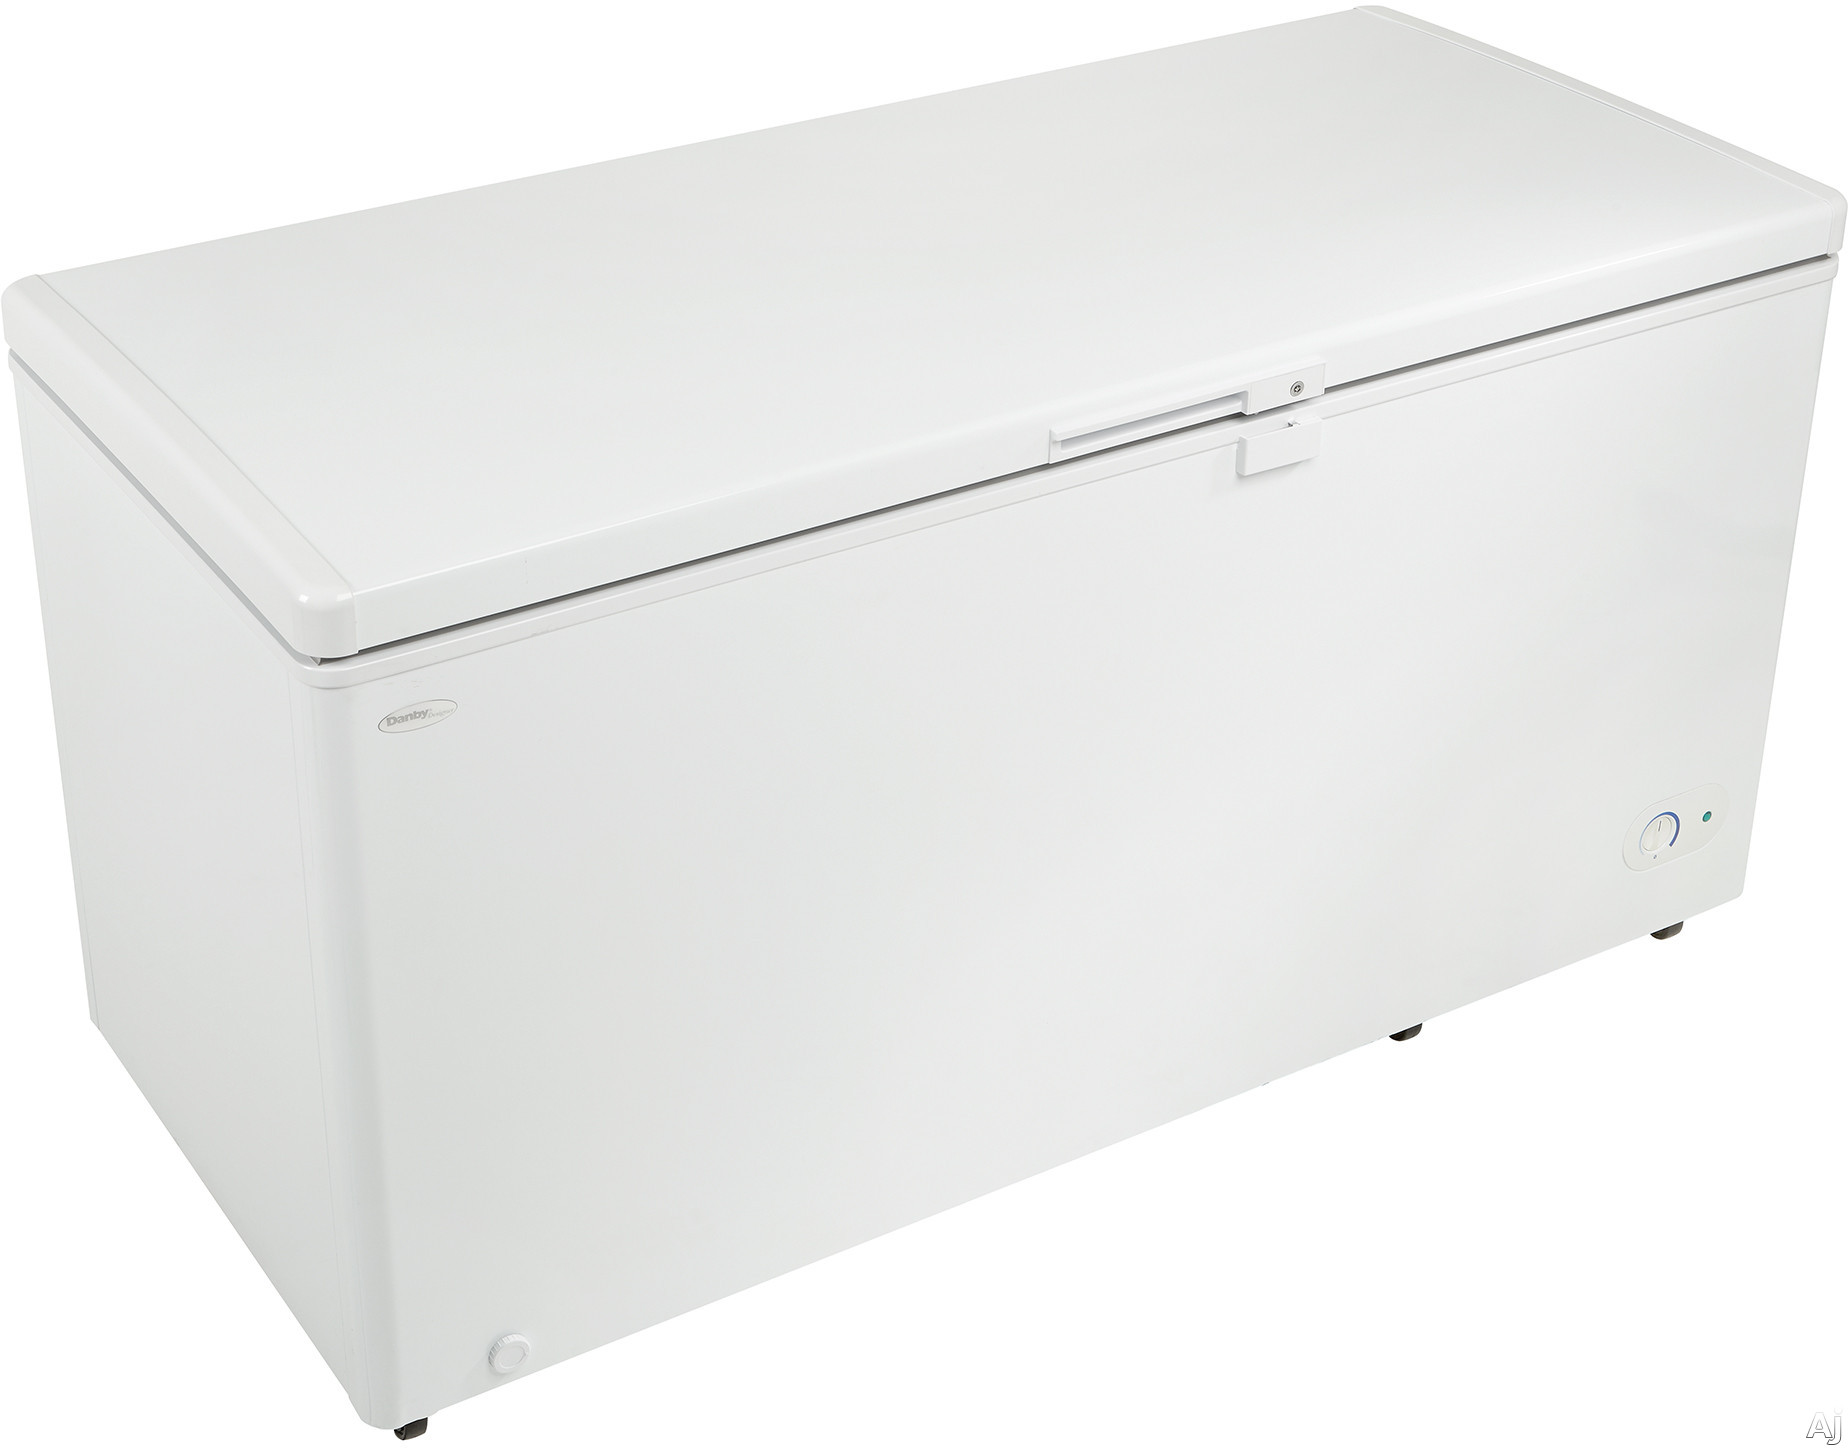 "Image of ""Danby Designer Series DCF145A1WDD 60"""" Chest Freezer with 14.5 cu. ft. Capacity, 2 Heavy Duty Wire Baskets, Wire Compartment Divider, Interior LED Light, Integrated Lock and Power-On Indicator Light"""